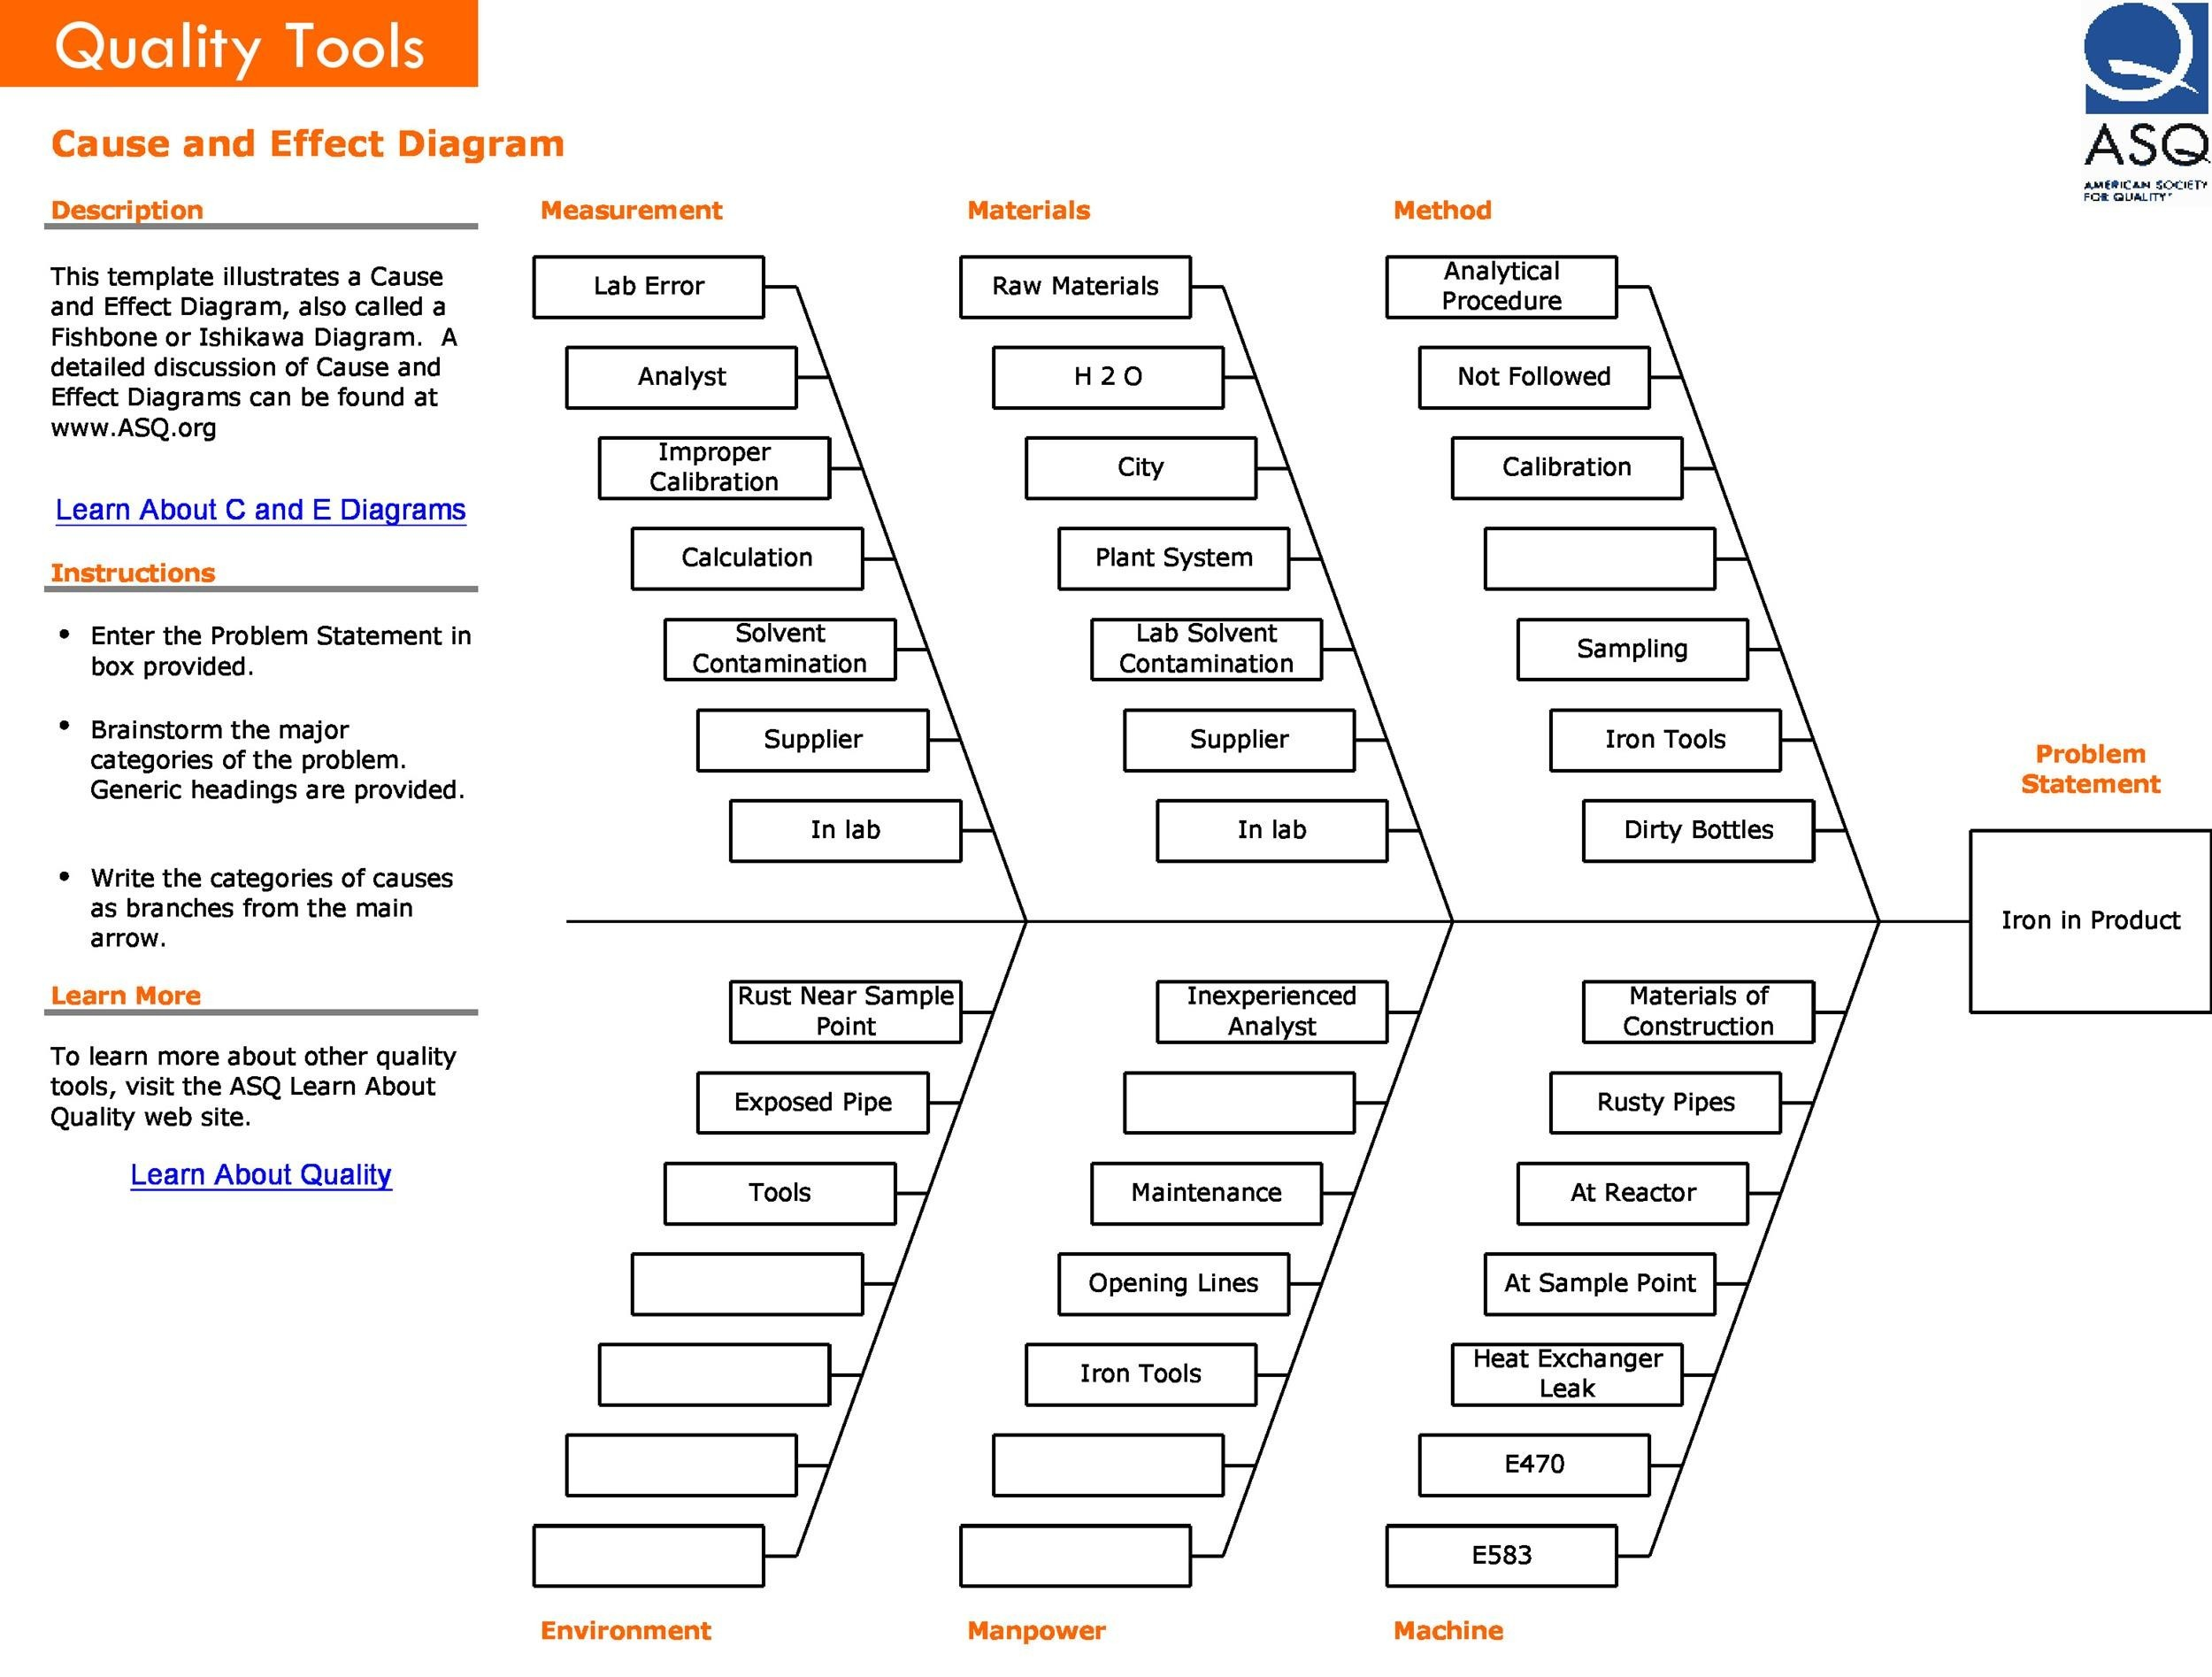 43 great fishbone diagram templates examples word excel free fishbone diagram template 01 ccuart Image collections